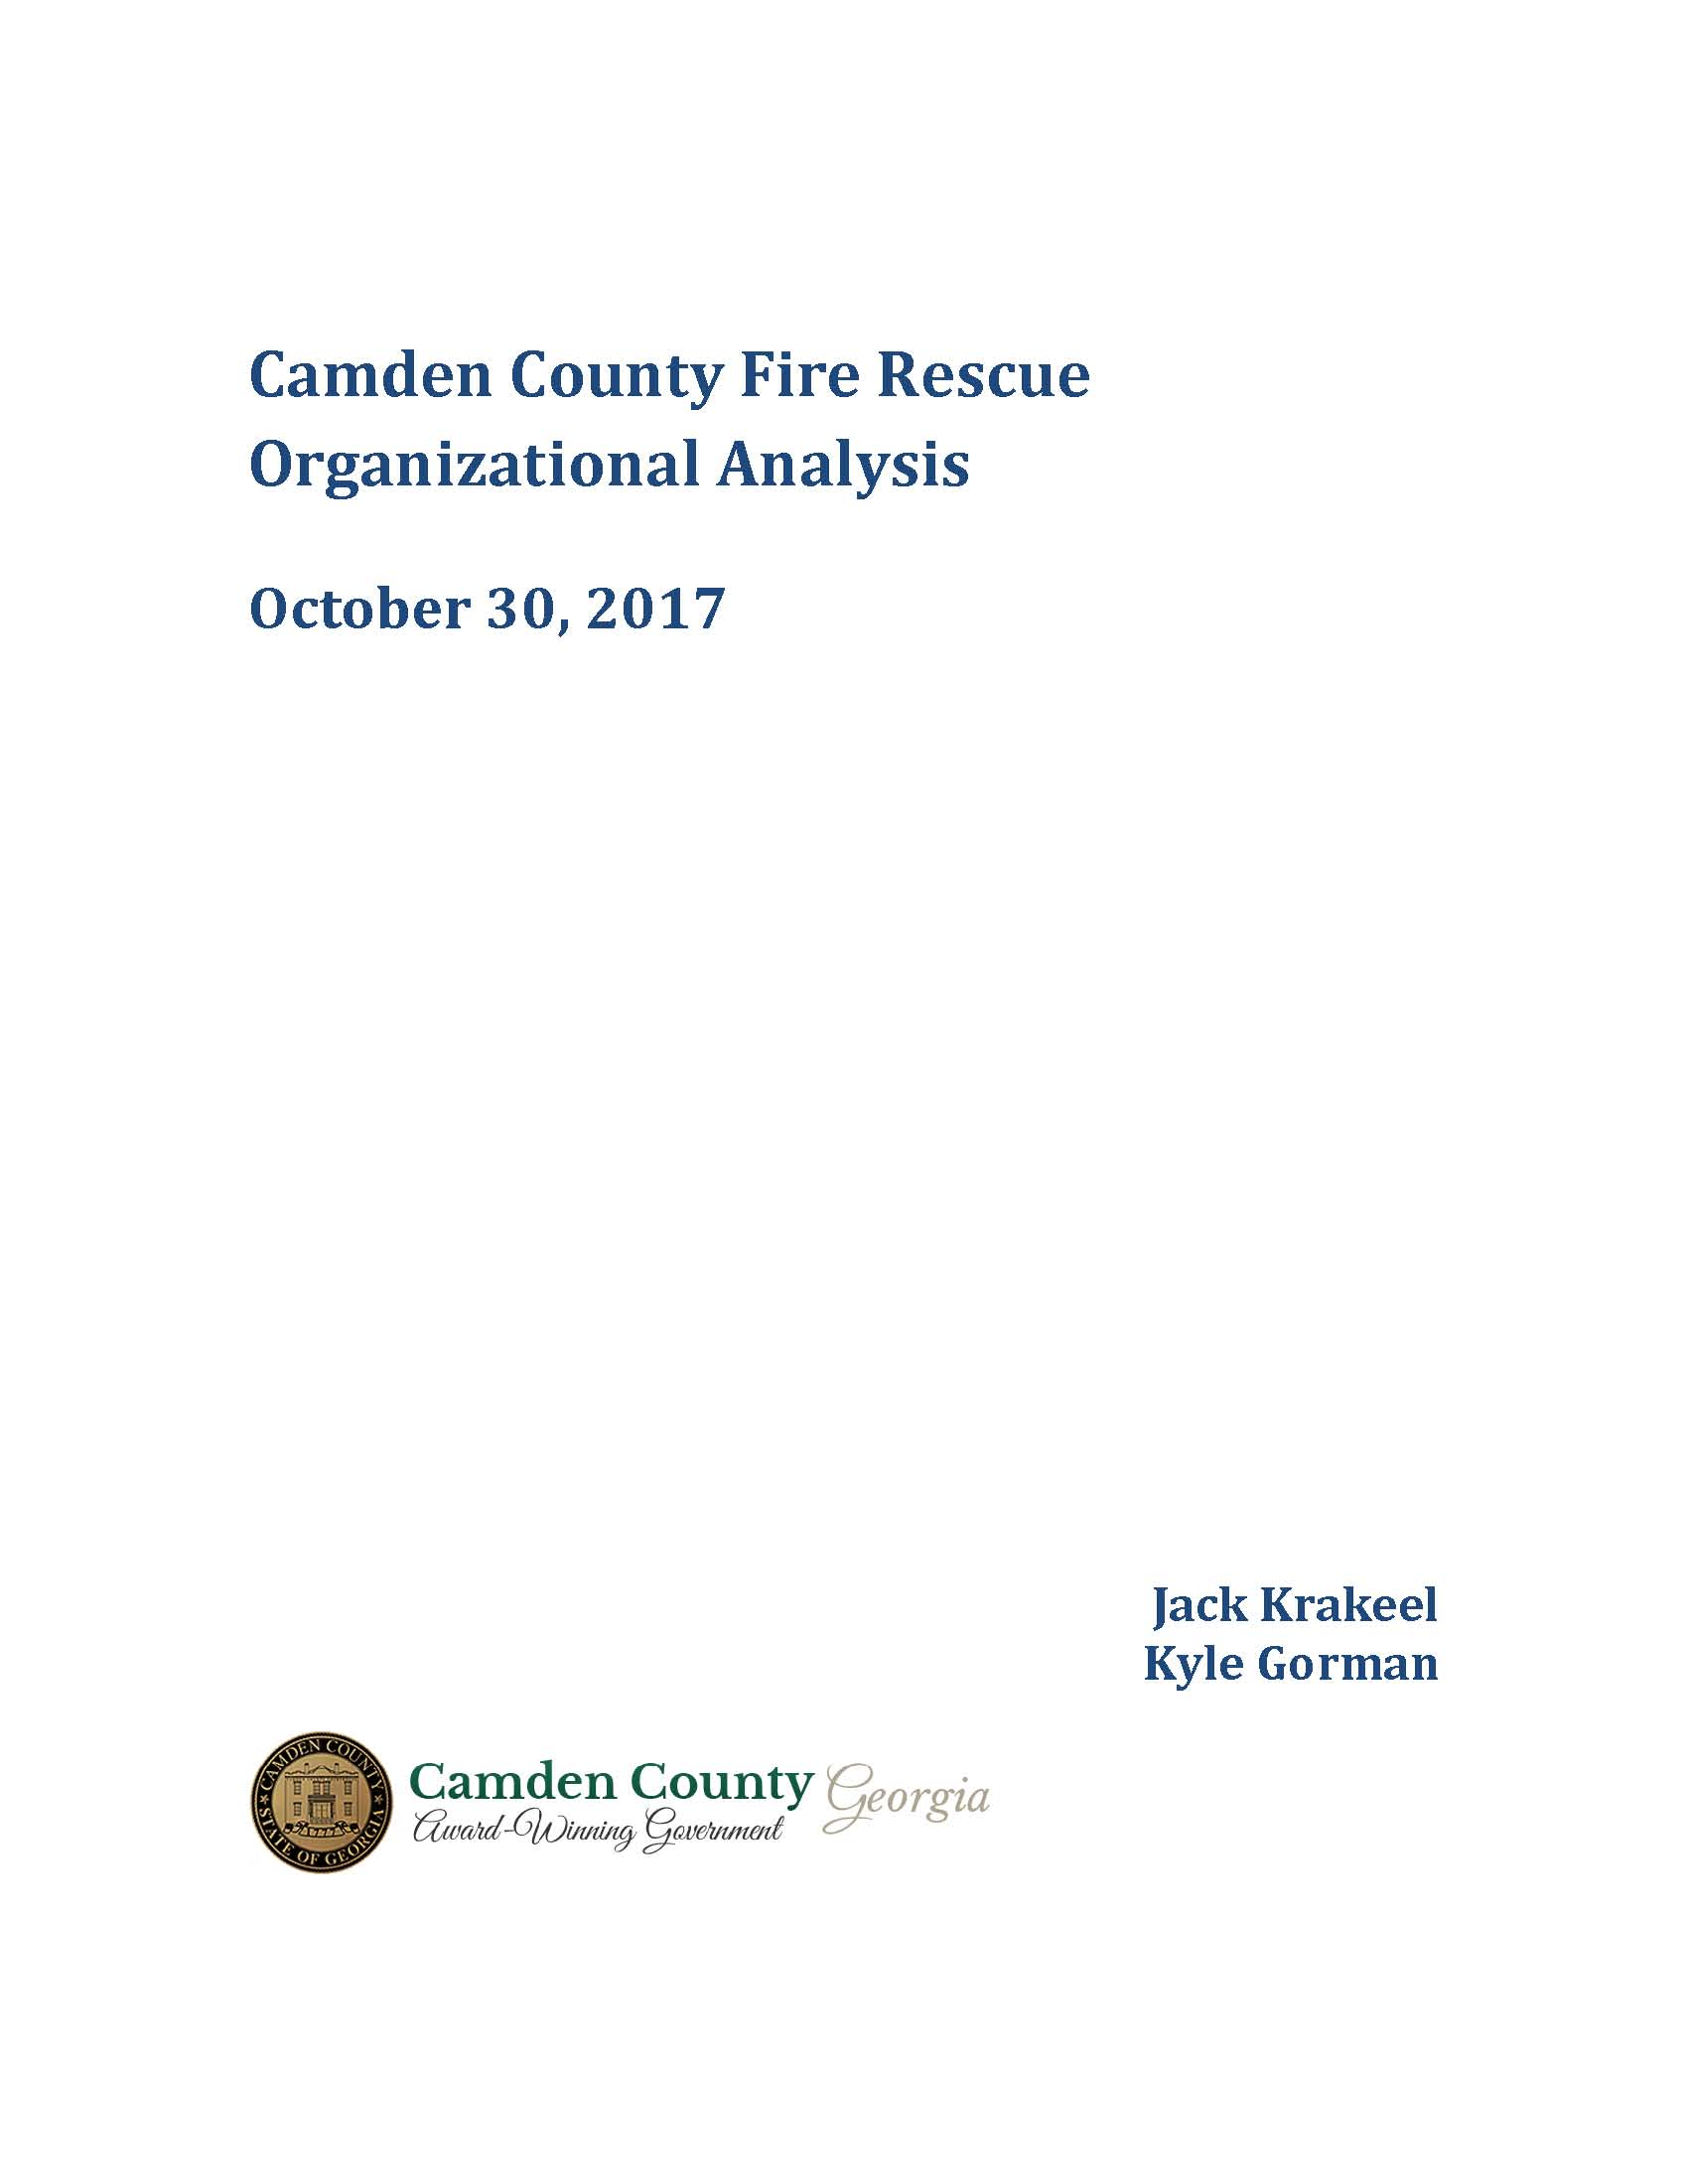 Camden County Fire Rescue Organizational Analysis_Page_01